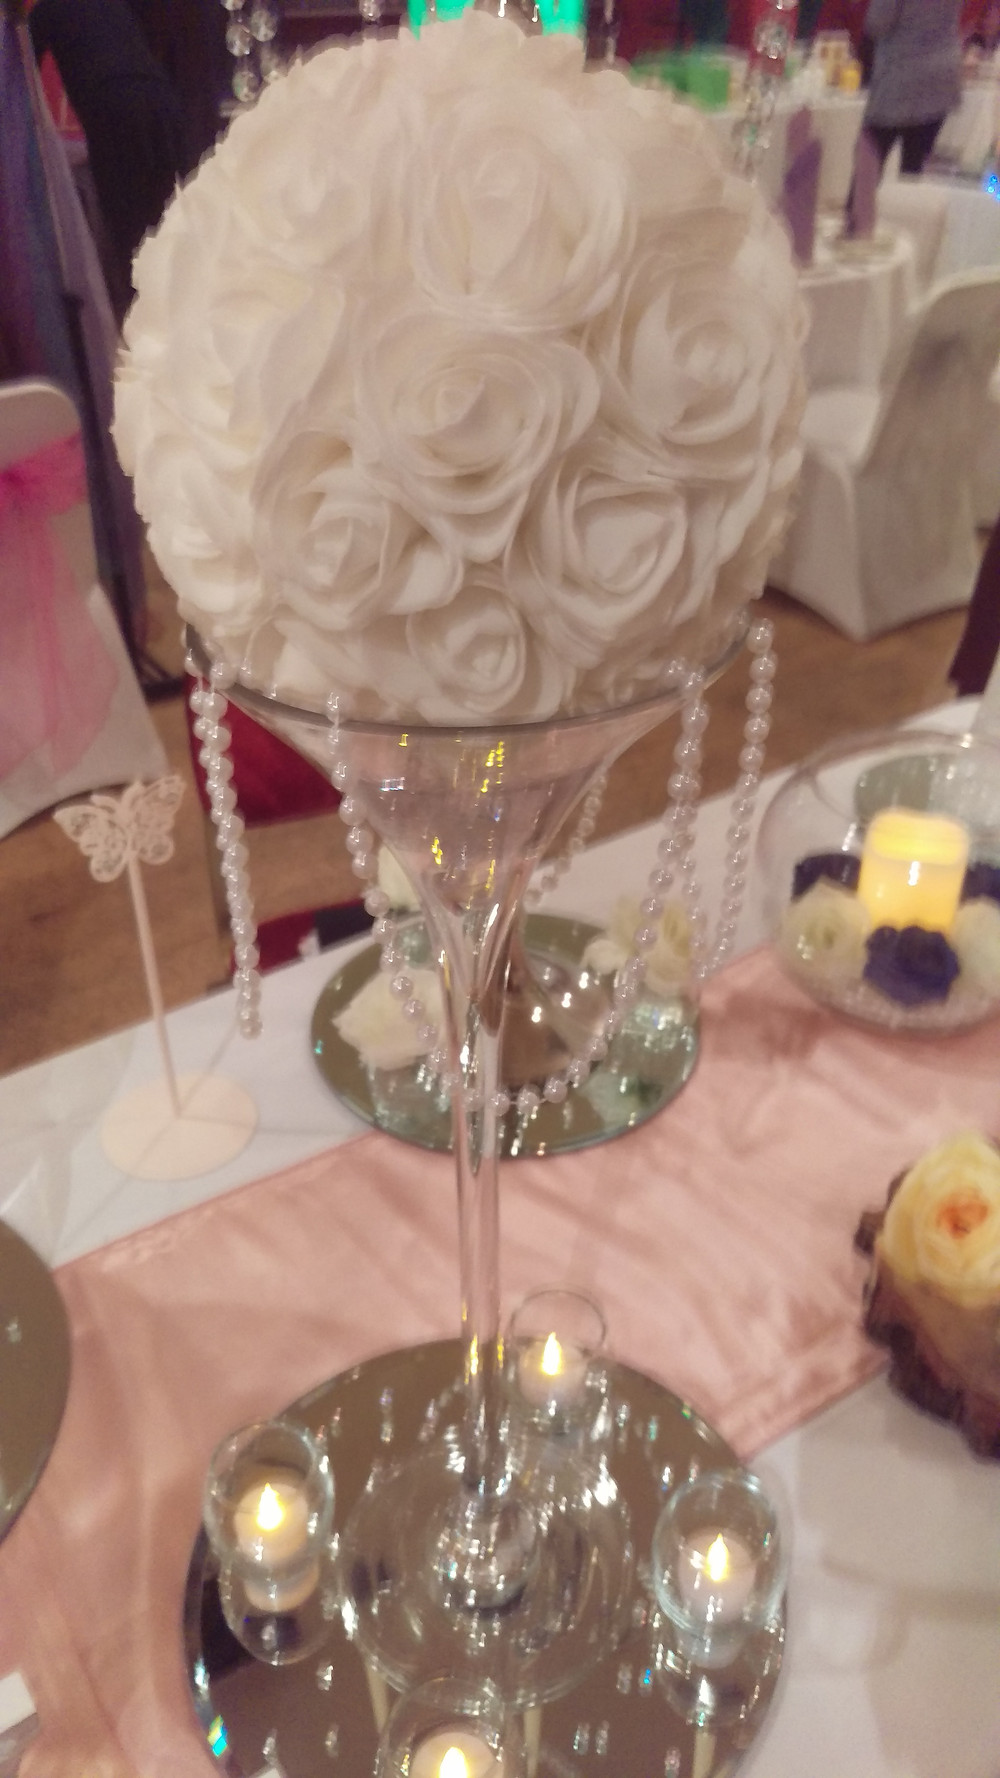 Martini Vase with White Pomander and Pearl Garland Table Center Wedding Venue Table Decoration by Embellish Venue Styling Kent - www.embellishvenuestyling.uk